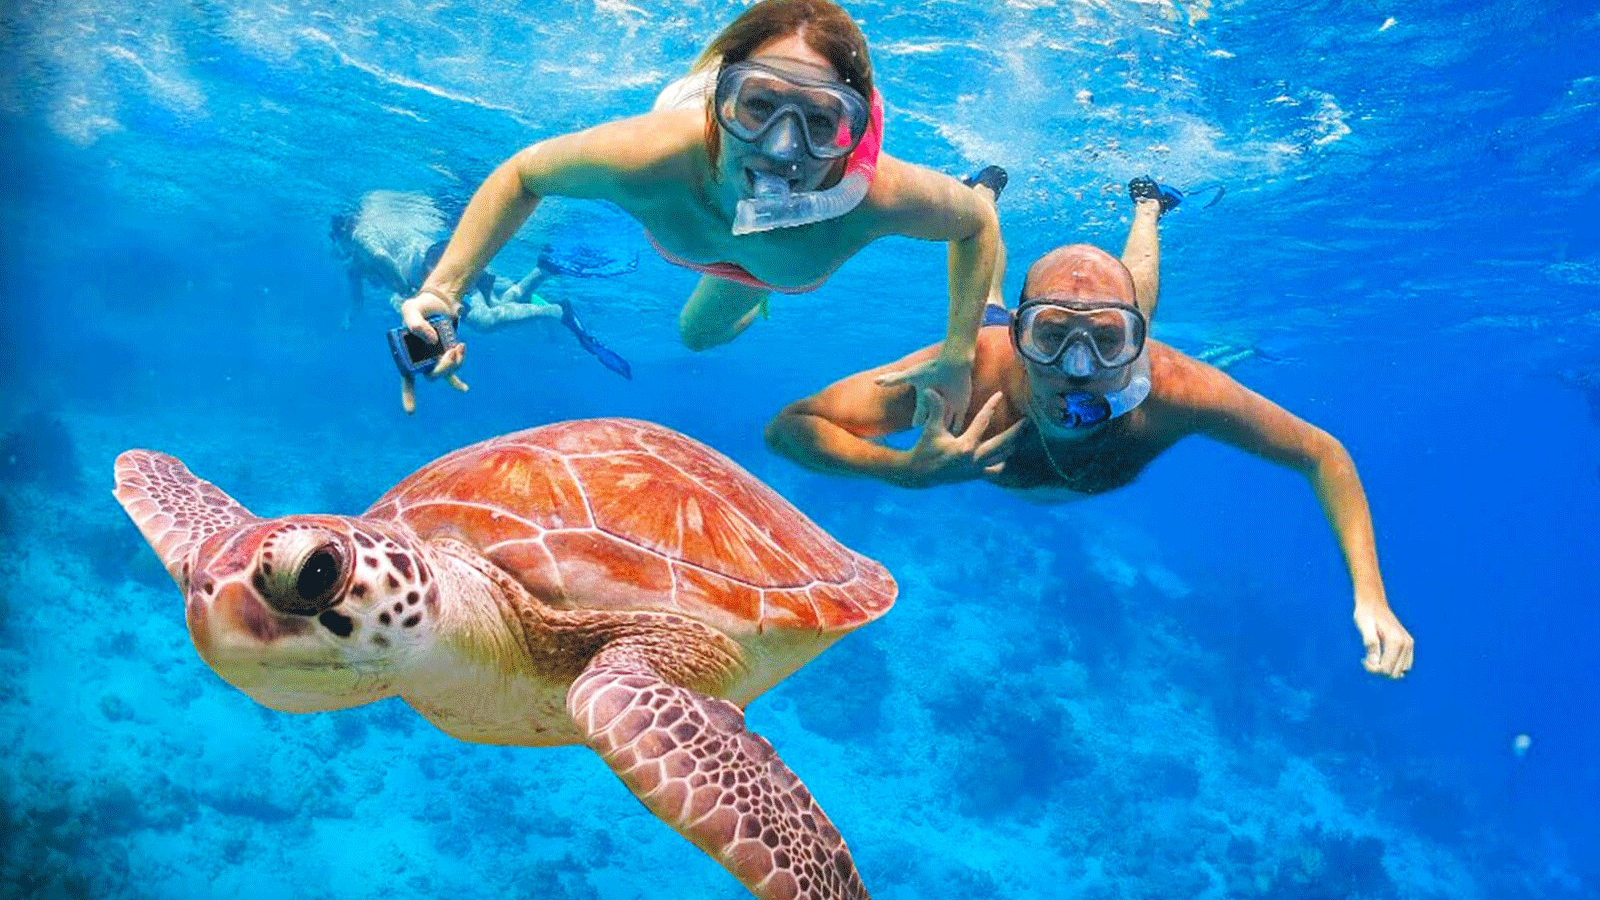 Paradise Snorkeling Trip Full Day from El-Gouna